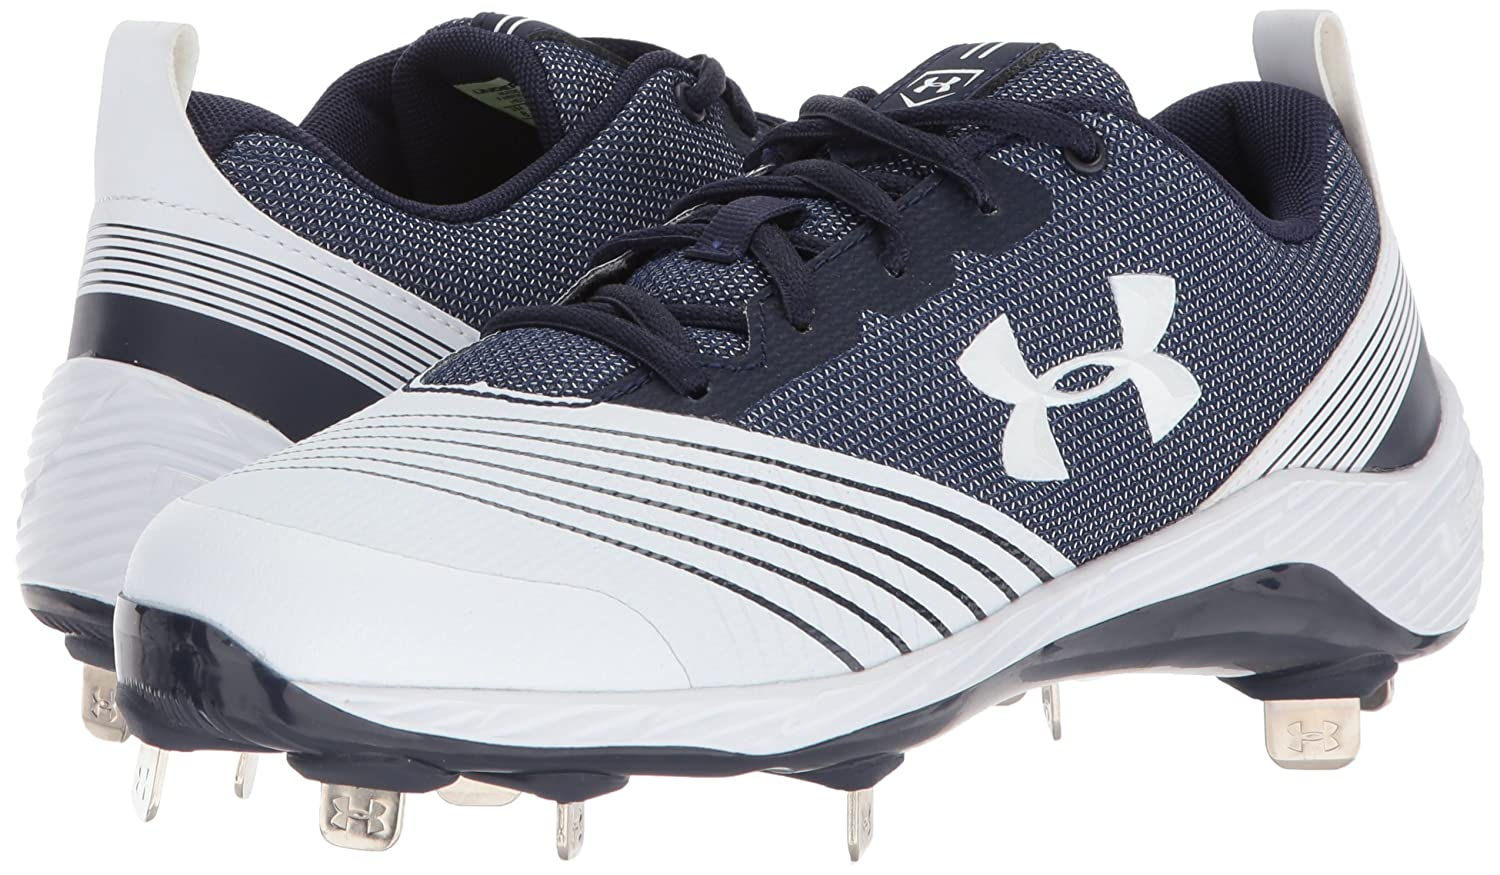 Under Armour Women's Glyde St Softball Shoe B06XCDLC93 9 M US|White (141)/Midnight Navy